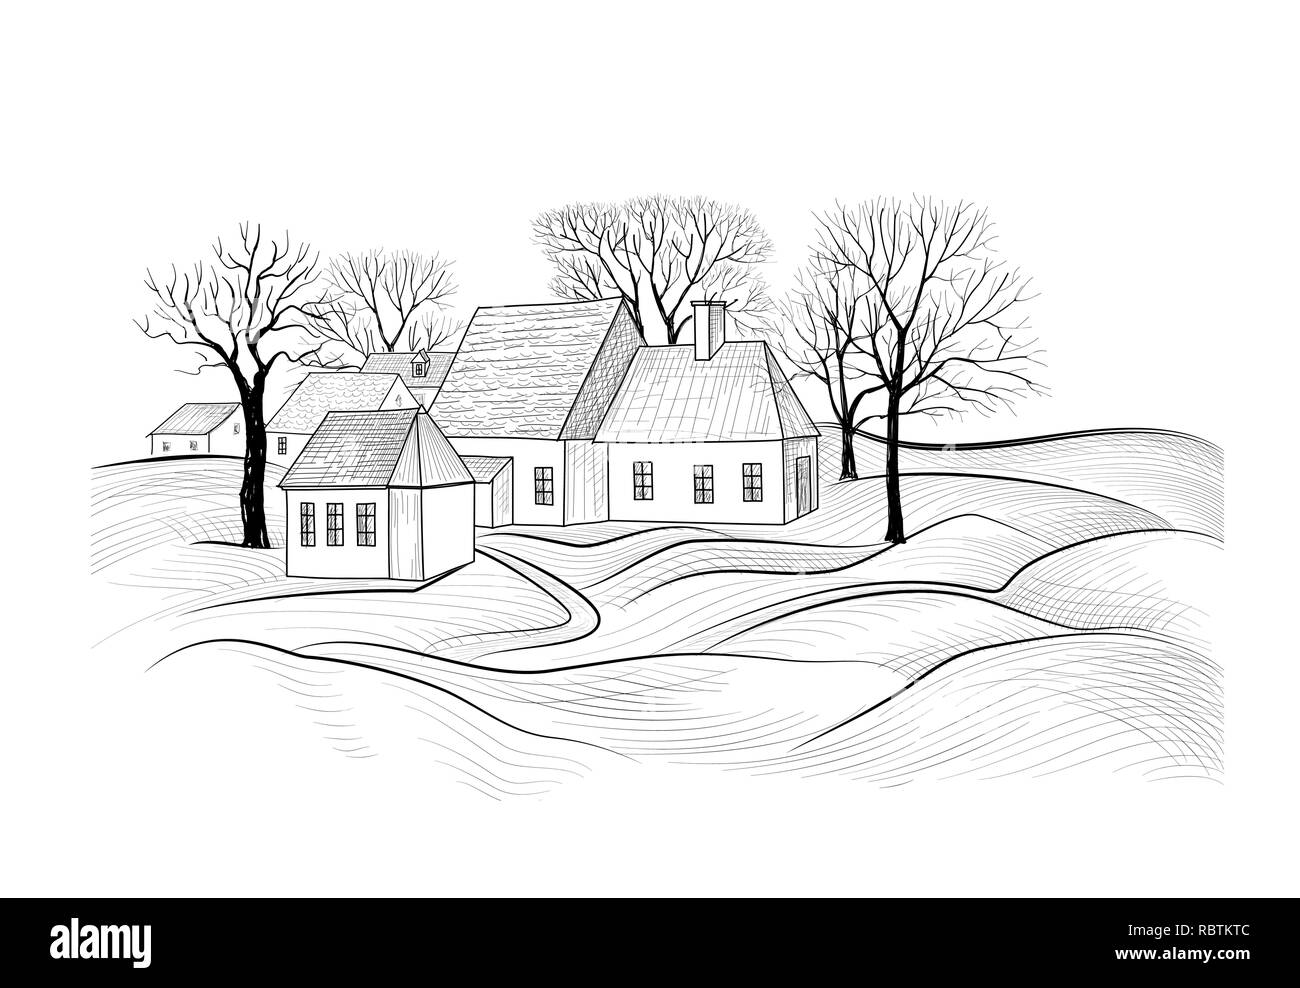 Countryside rural landscape with village house sketch of countryhouse building with fields farm land